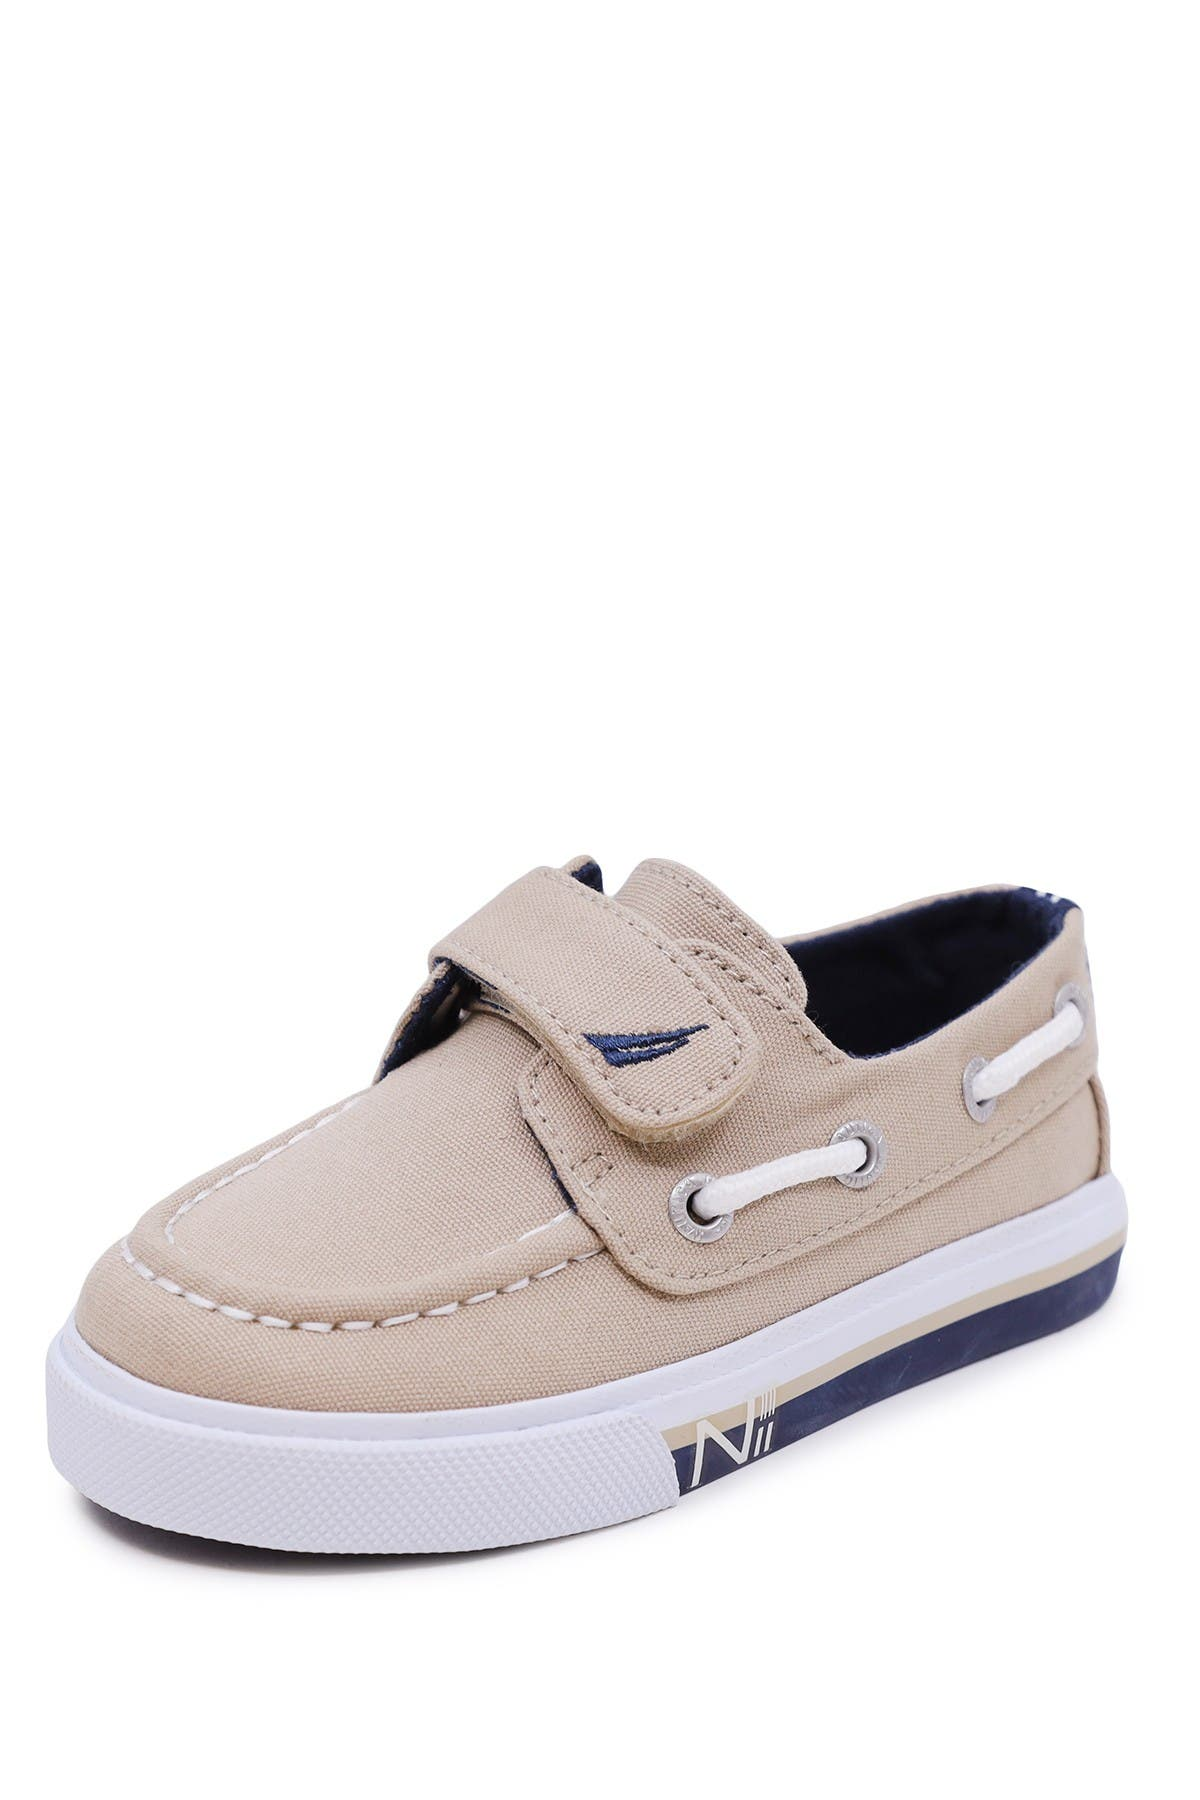 Image of Nautica Little River Boat Shoe